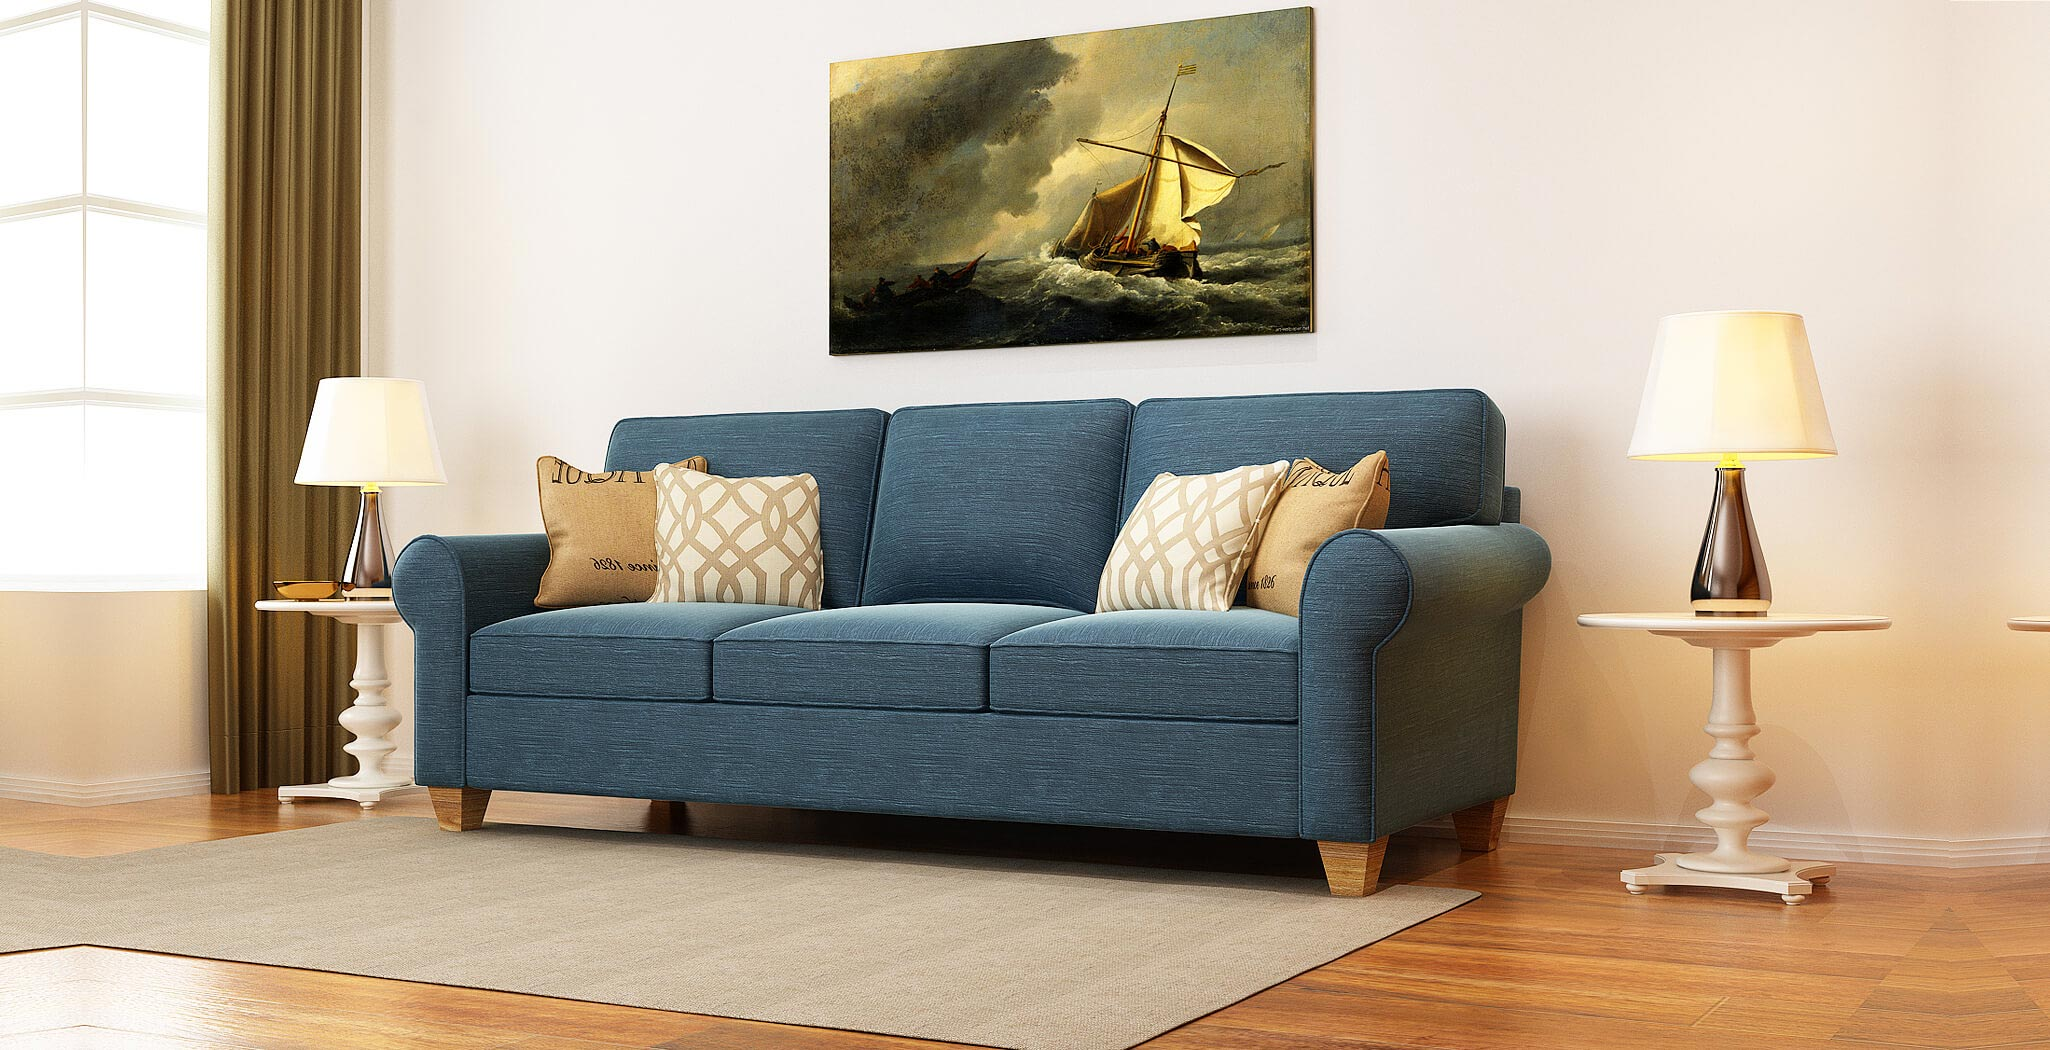 augusta sofa furniture gallery 2